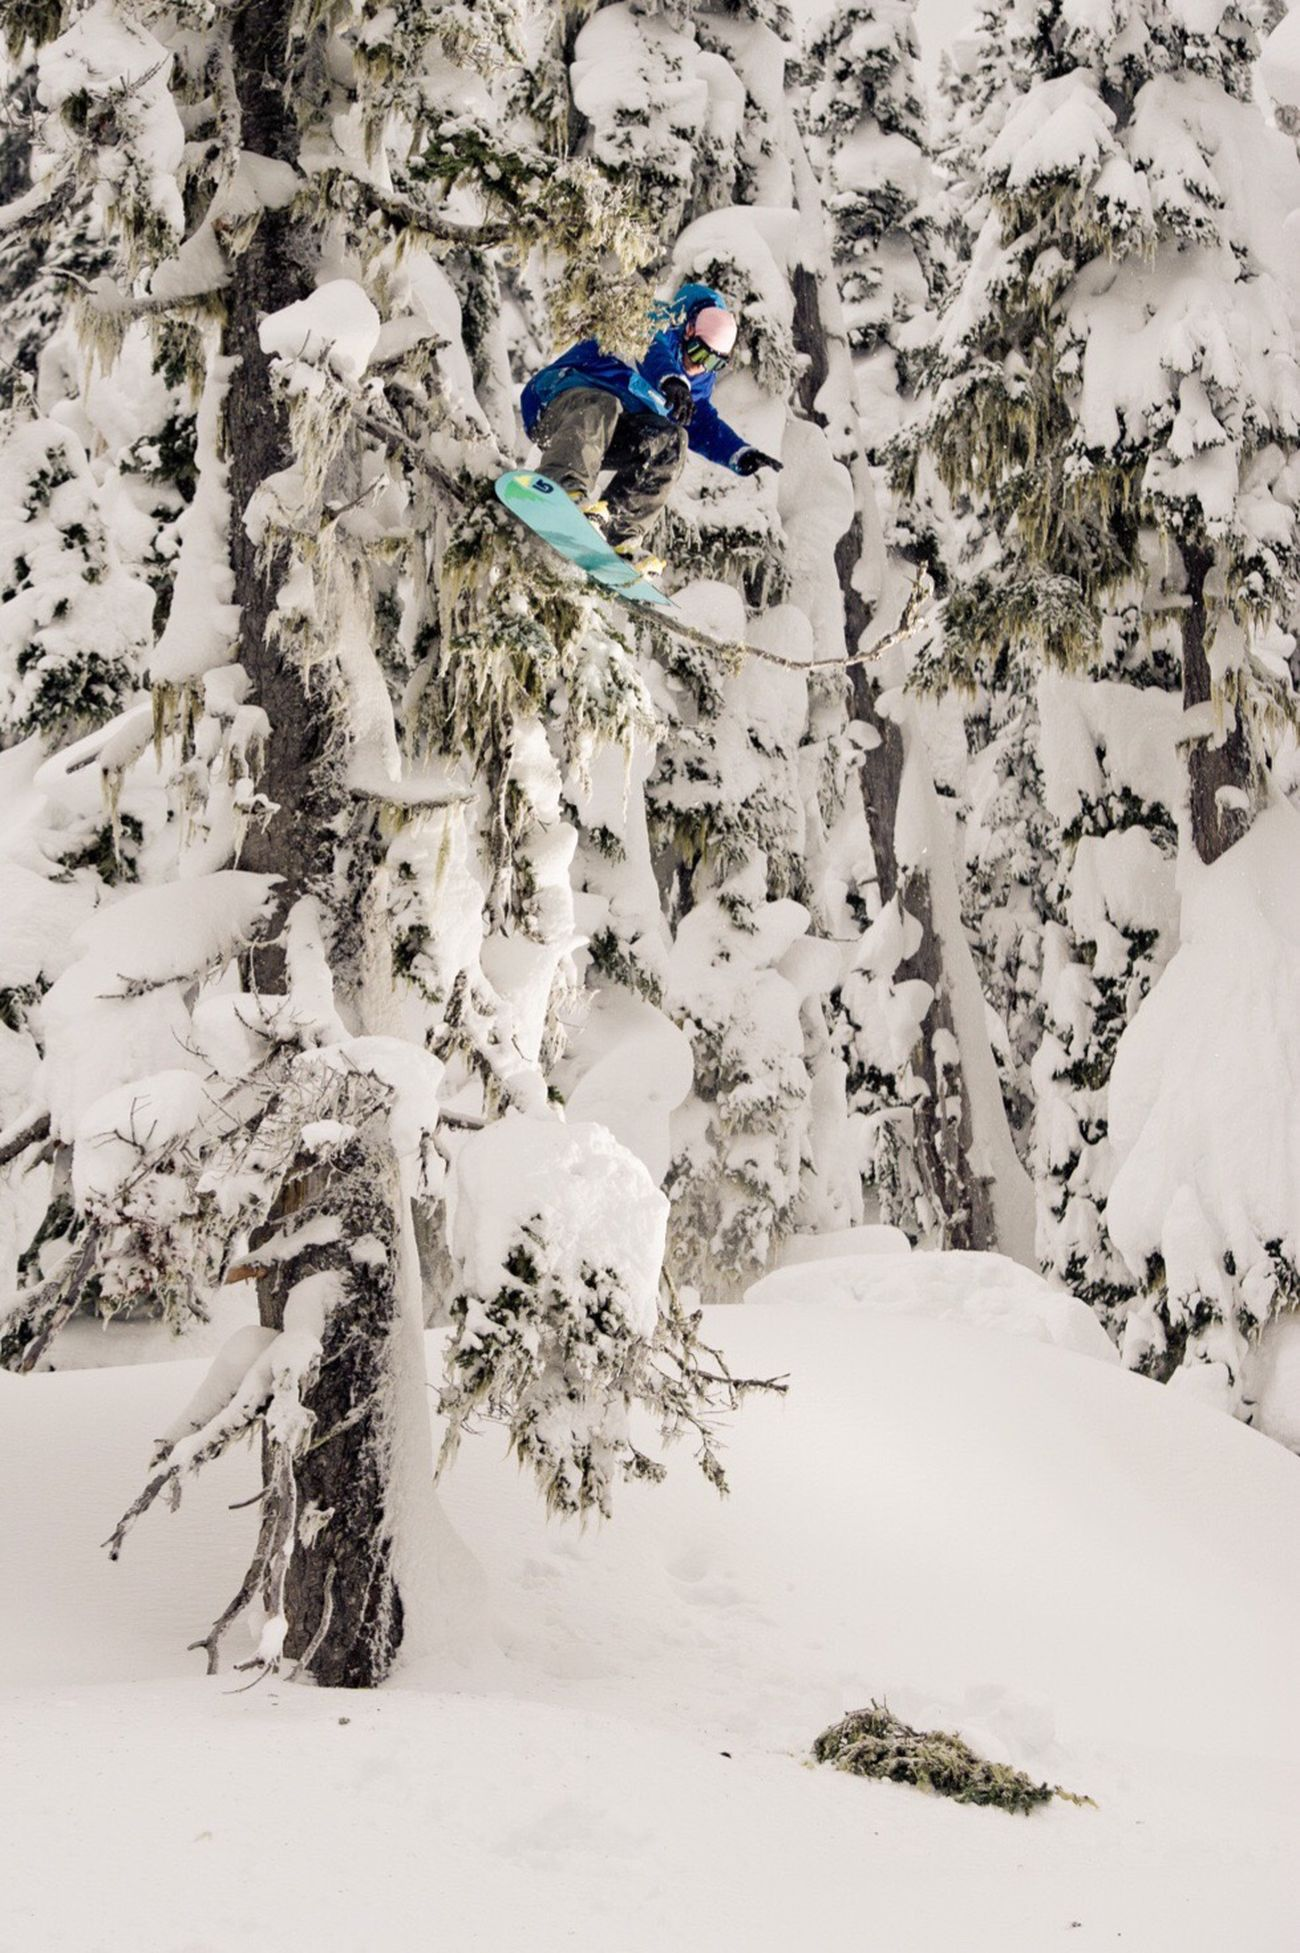 Snow Sports Snowboarding in Britishcolumbia Canada > Rider Mikey Rencz popping his way thru the trees > Winter Snow